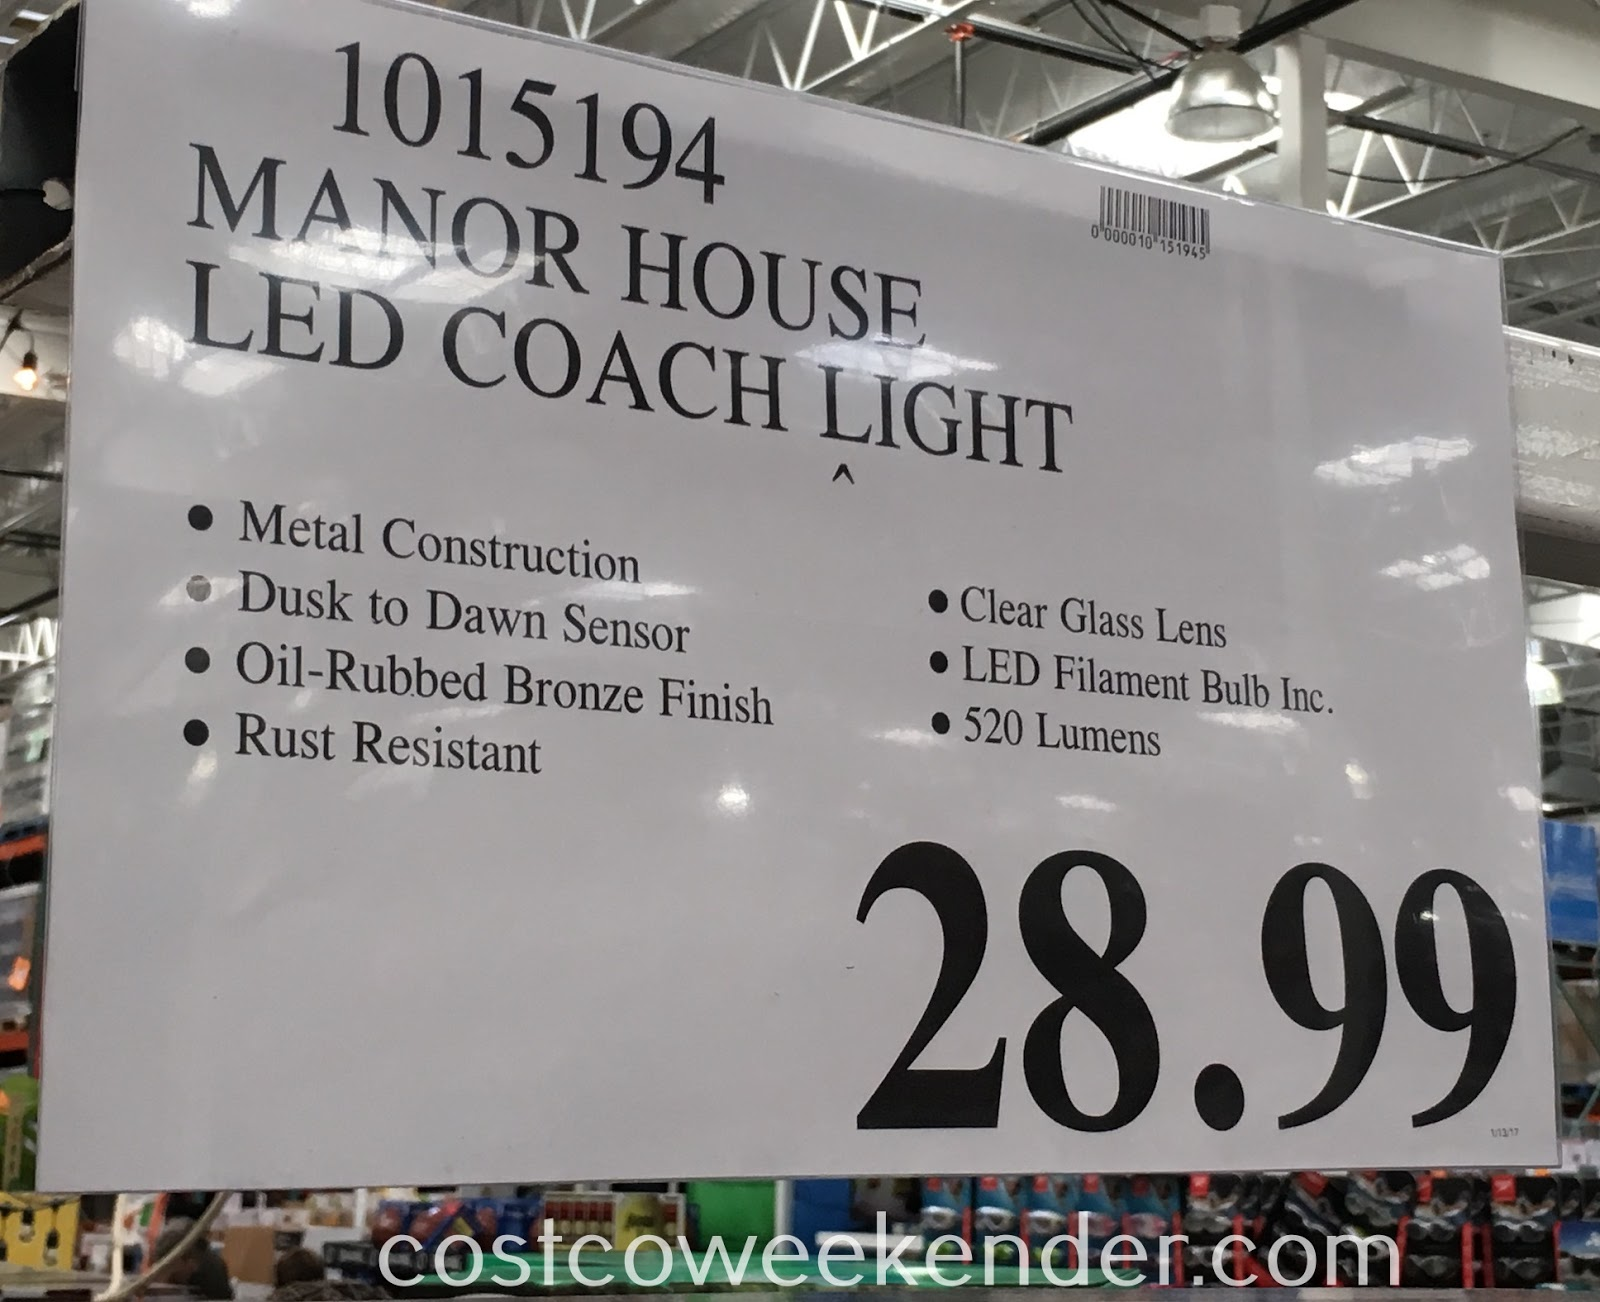 Deal for the Manor House Vintage LED Coach Light at Costco